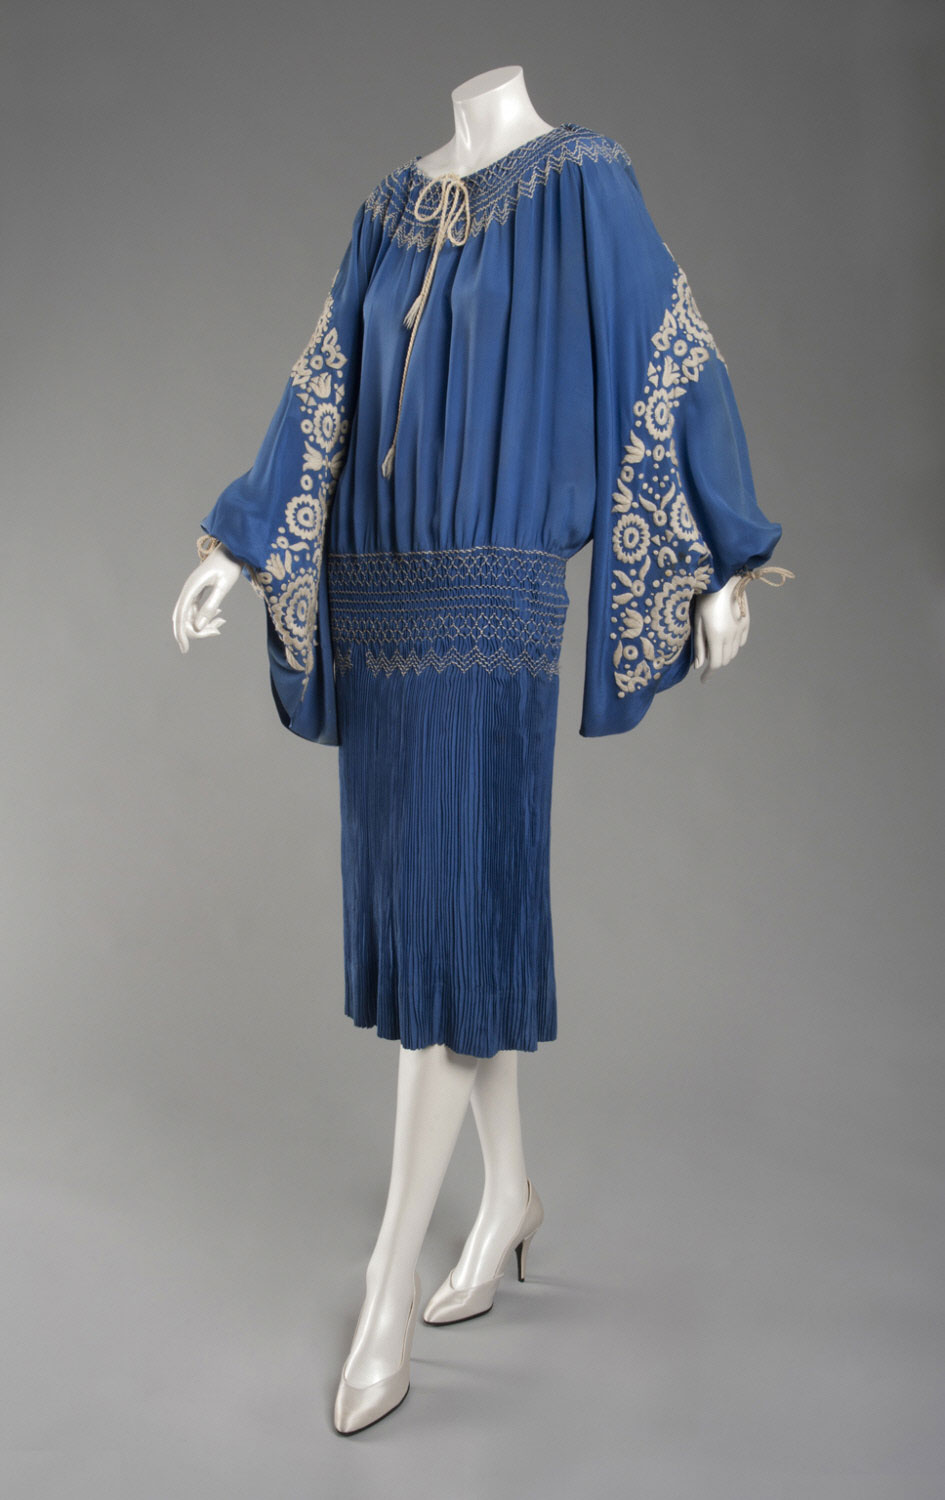 Dress, bright blue silk plain weave, blue and white smocking, and white embroidery, Philadelphia Museum of Art, 1956-50-1